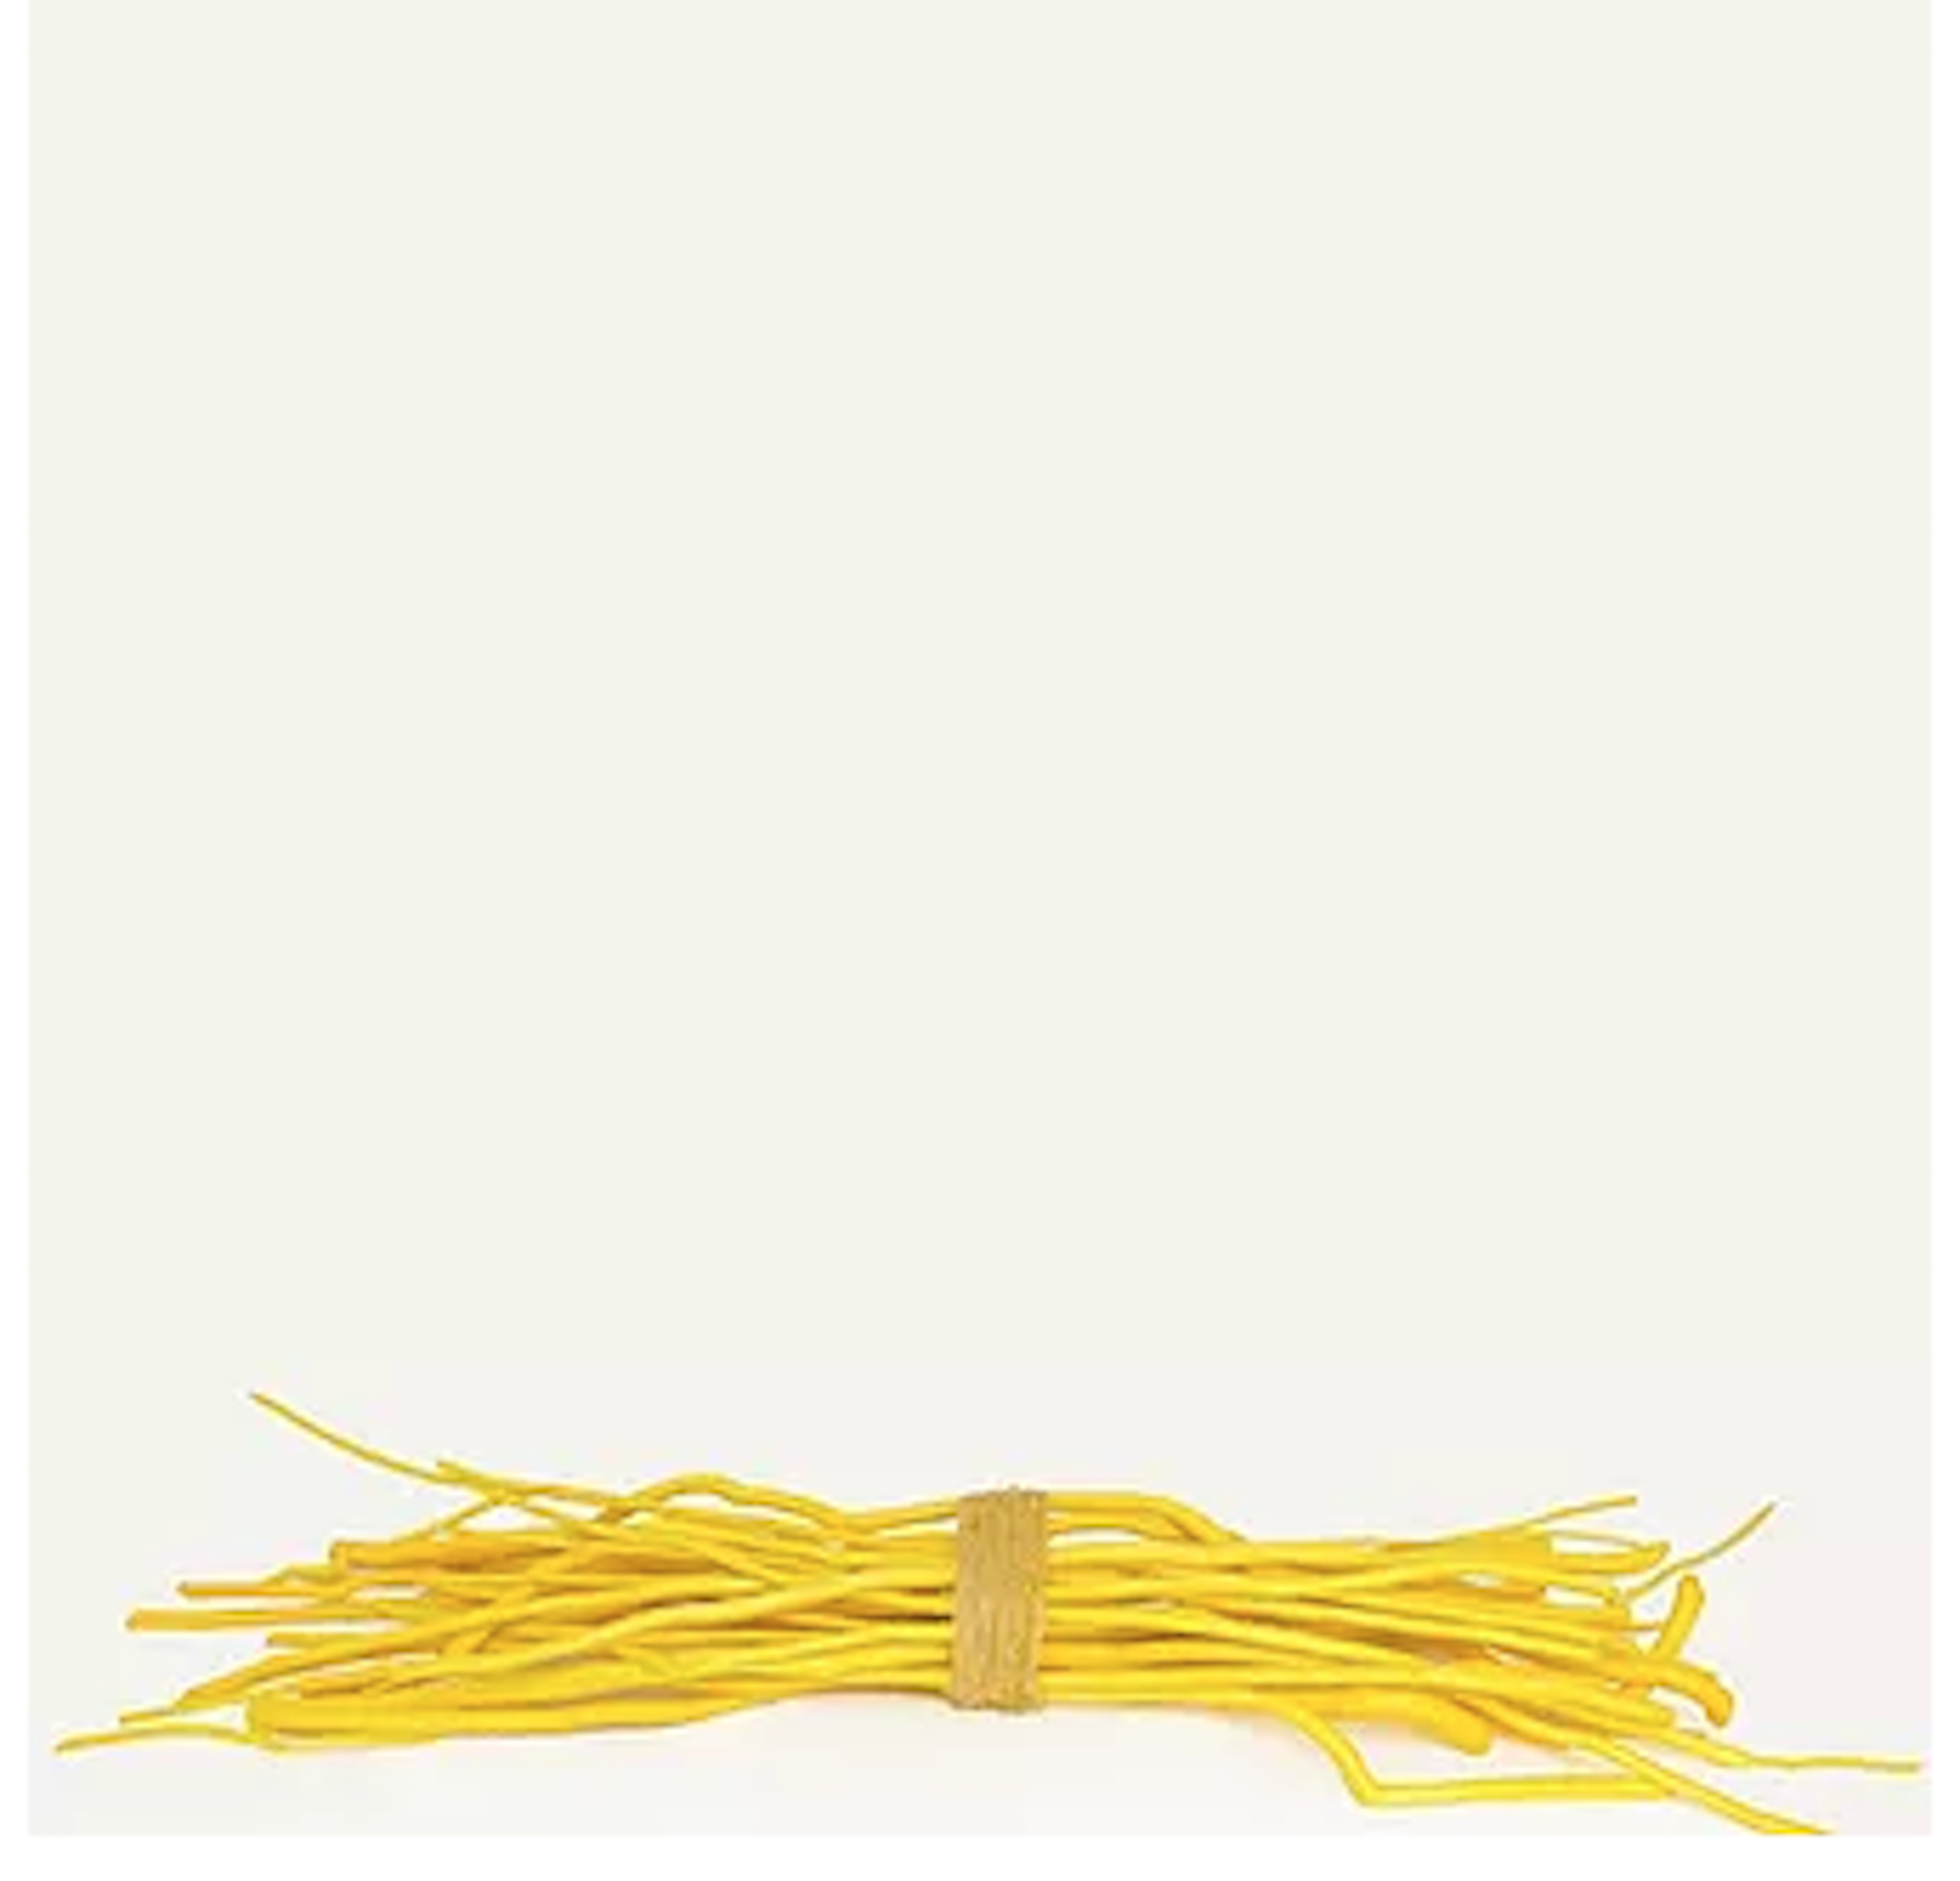 A white background and a bundle of sticks painted bright yellow and tied together